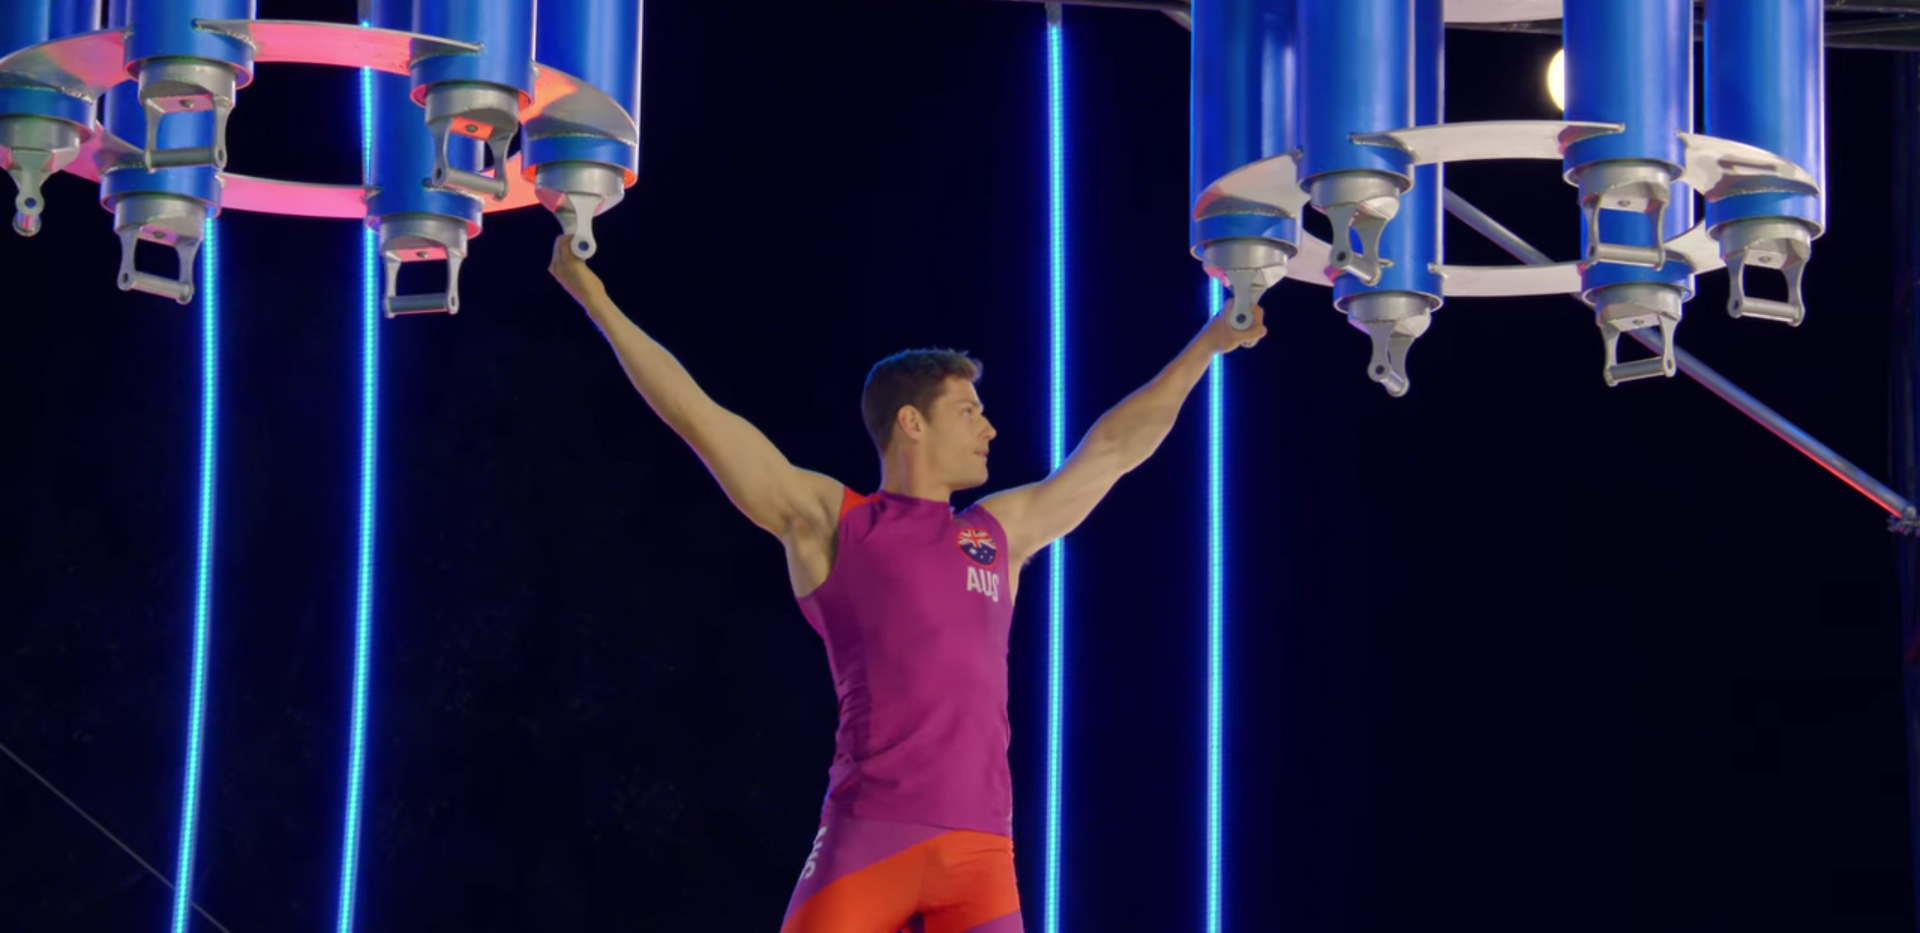 Ultimate Beastmaster Season 3 (Survival of the Fittest). Image Credit: Netflix